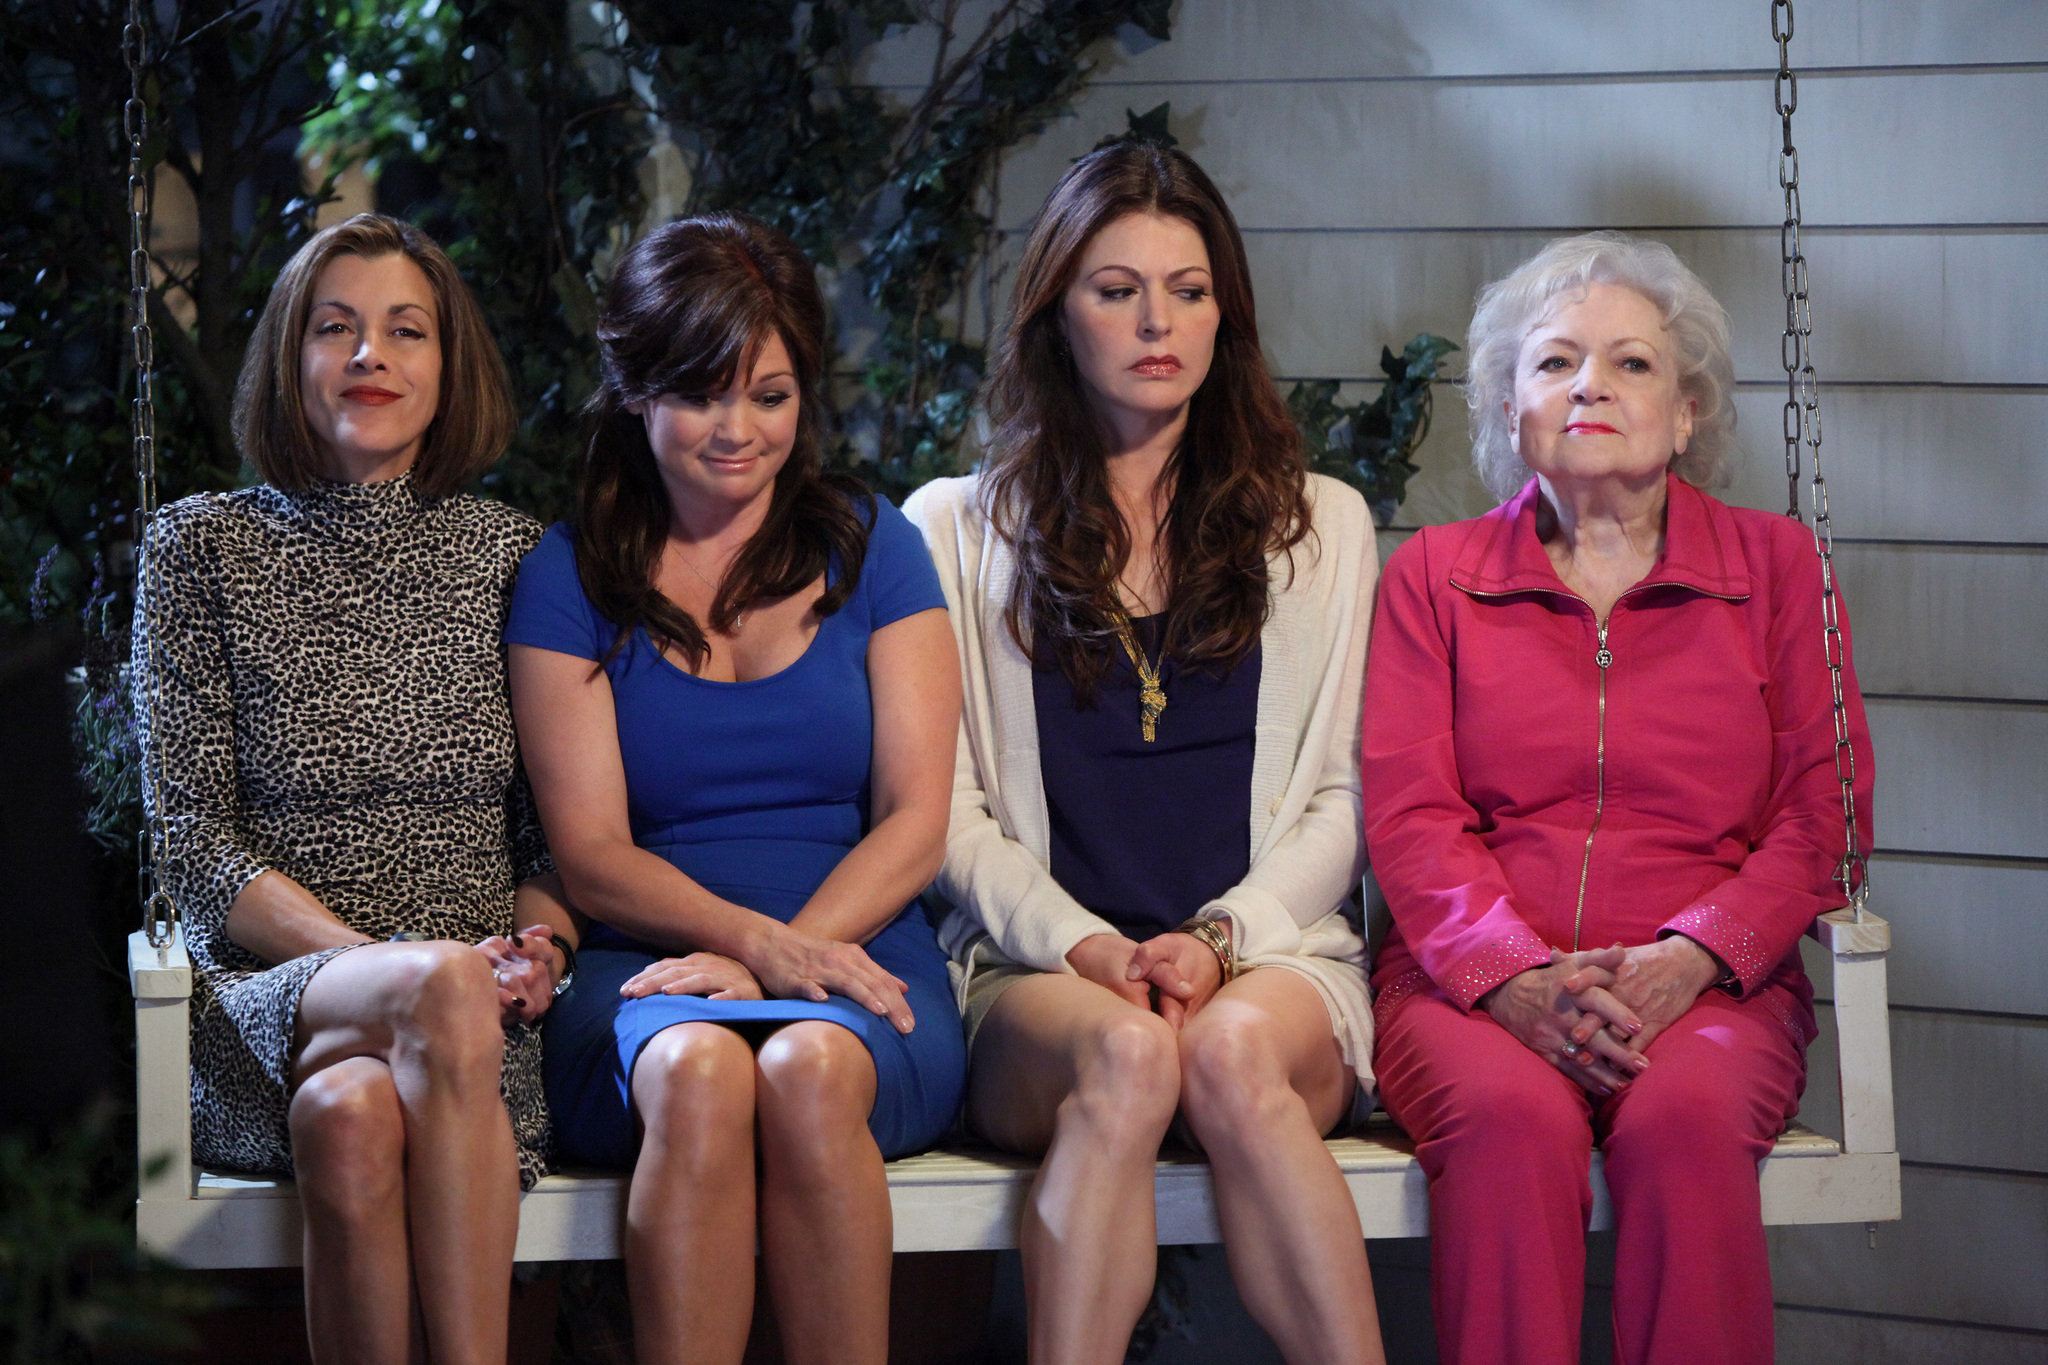 betty white, Betty White on Hot in Cleveland, What does Betty White Look like now, Betty White After the Golden Girls, celebs, movies/tv